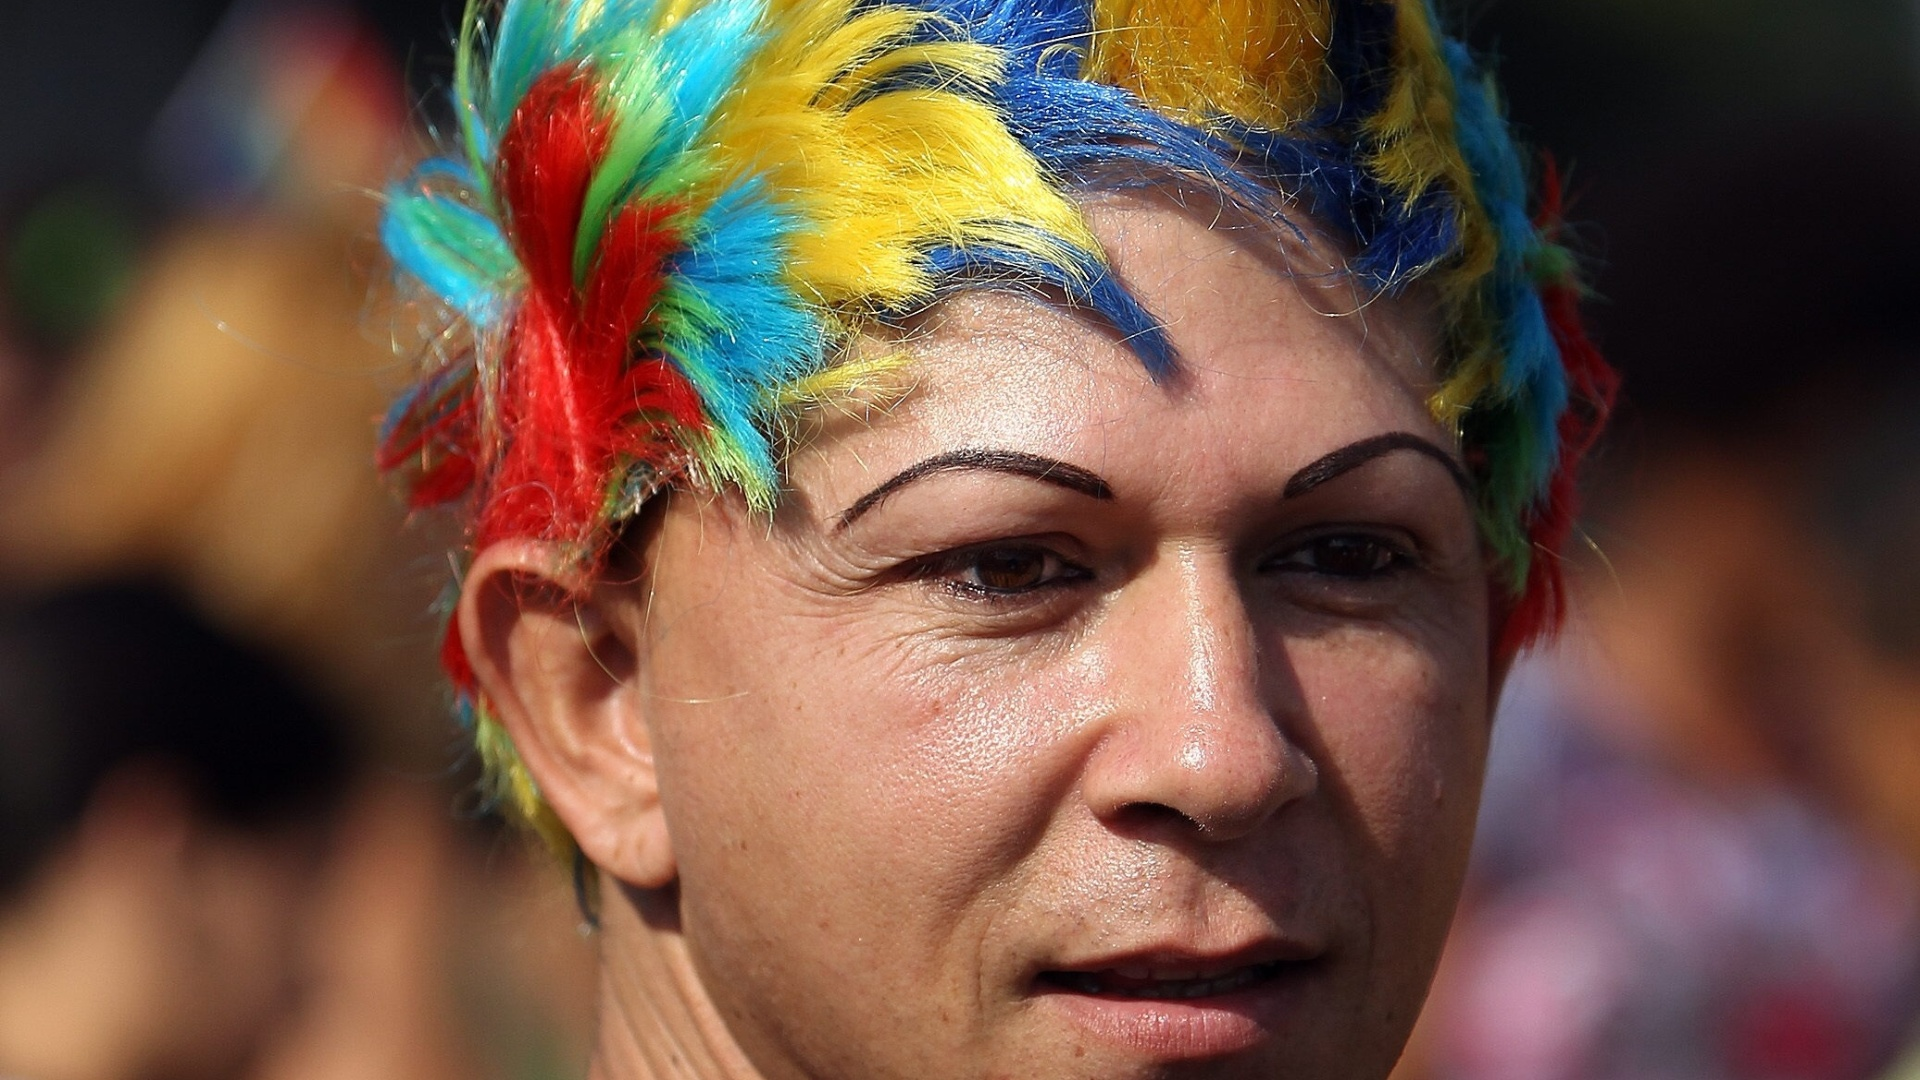 11.mai.2013 - Com um penteado estilizado e nas cores do movimento LGBT, cubano participa de Marcha contra a Homofobia, realizada pelas ruas centrais de Havana (Cuba). Os manifestantes reivindicam um socialismo que respeite a diversidade e combata o preconceito sexual